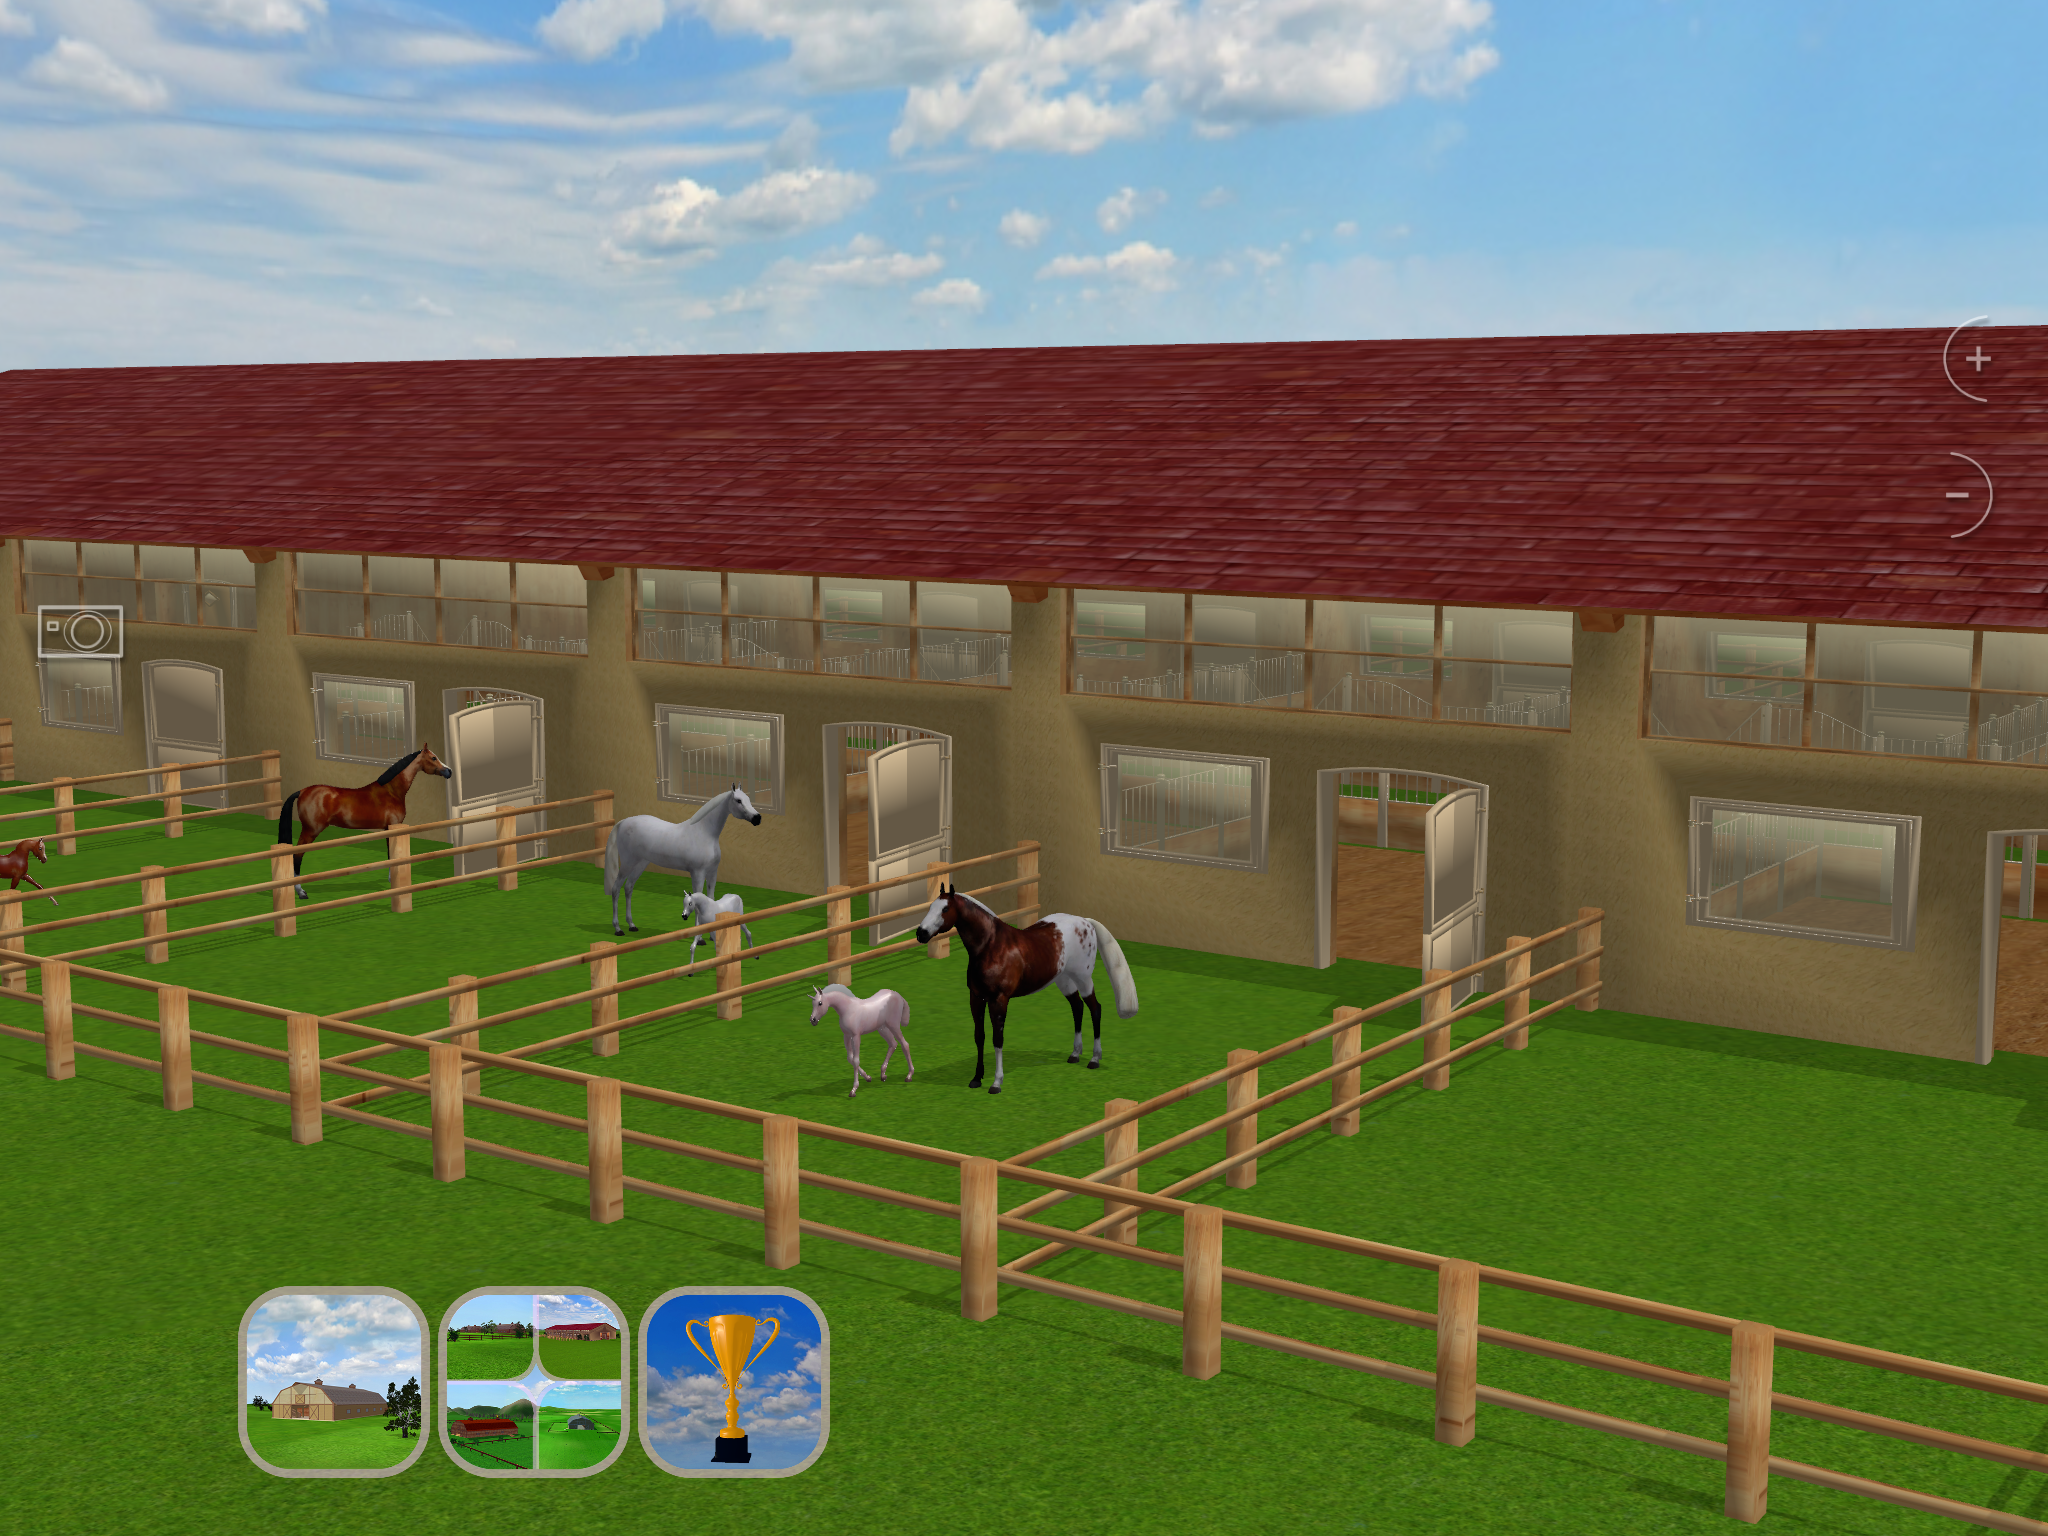 Jumpy Horse Breeding 1.0 - New Equine Game for iPad and iPhone Image